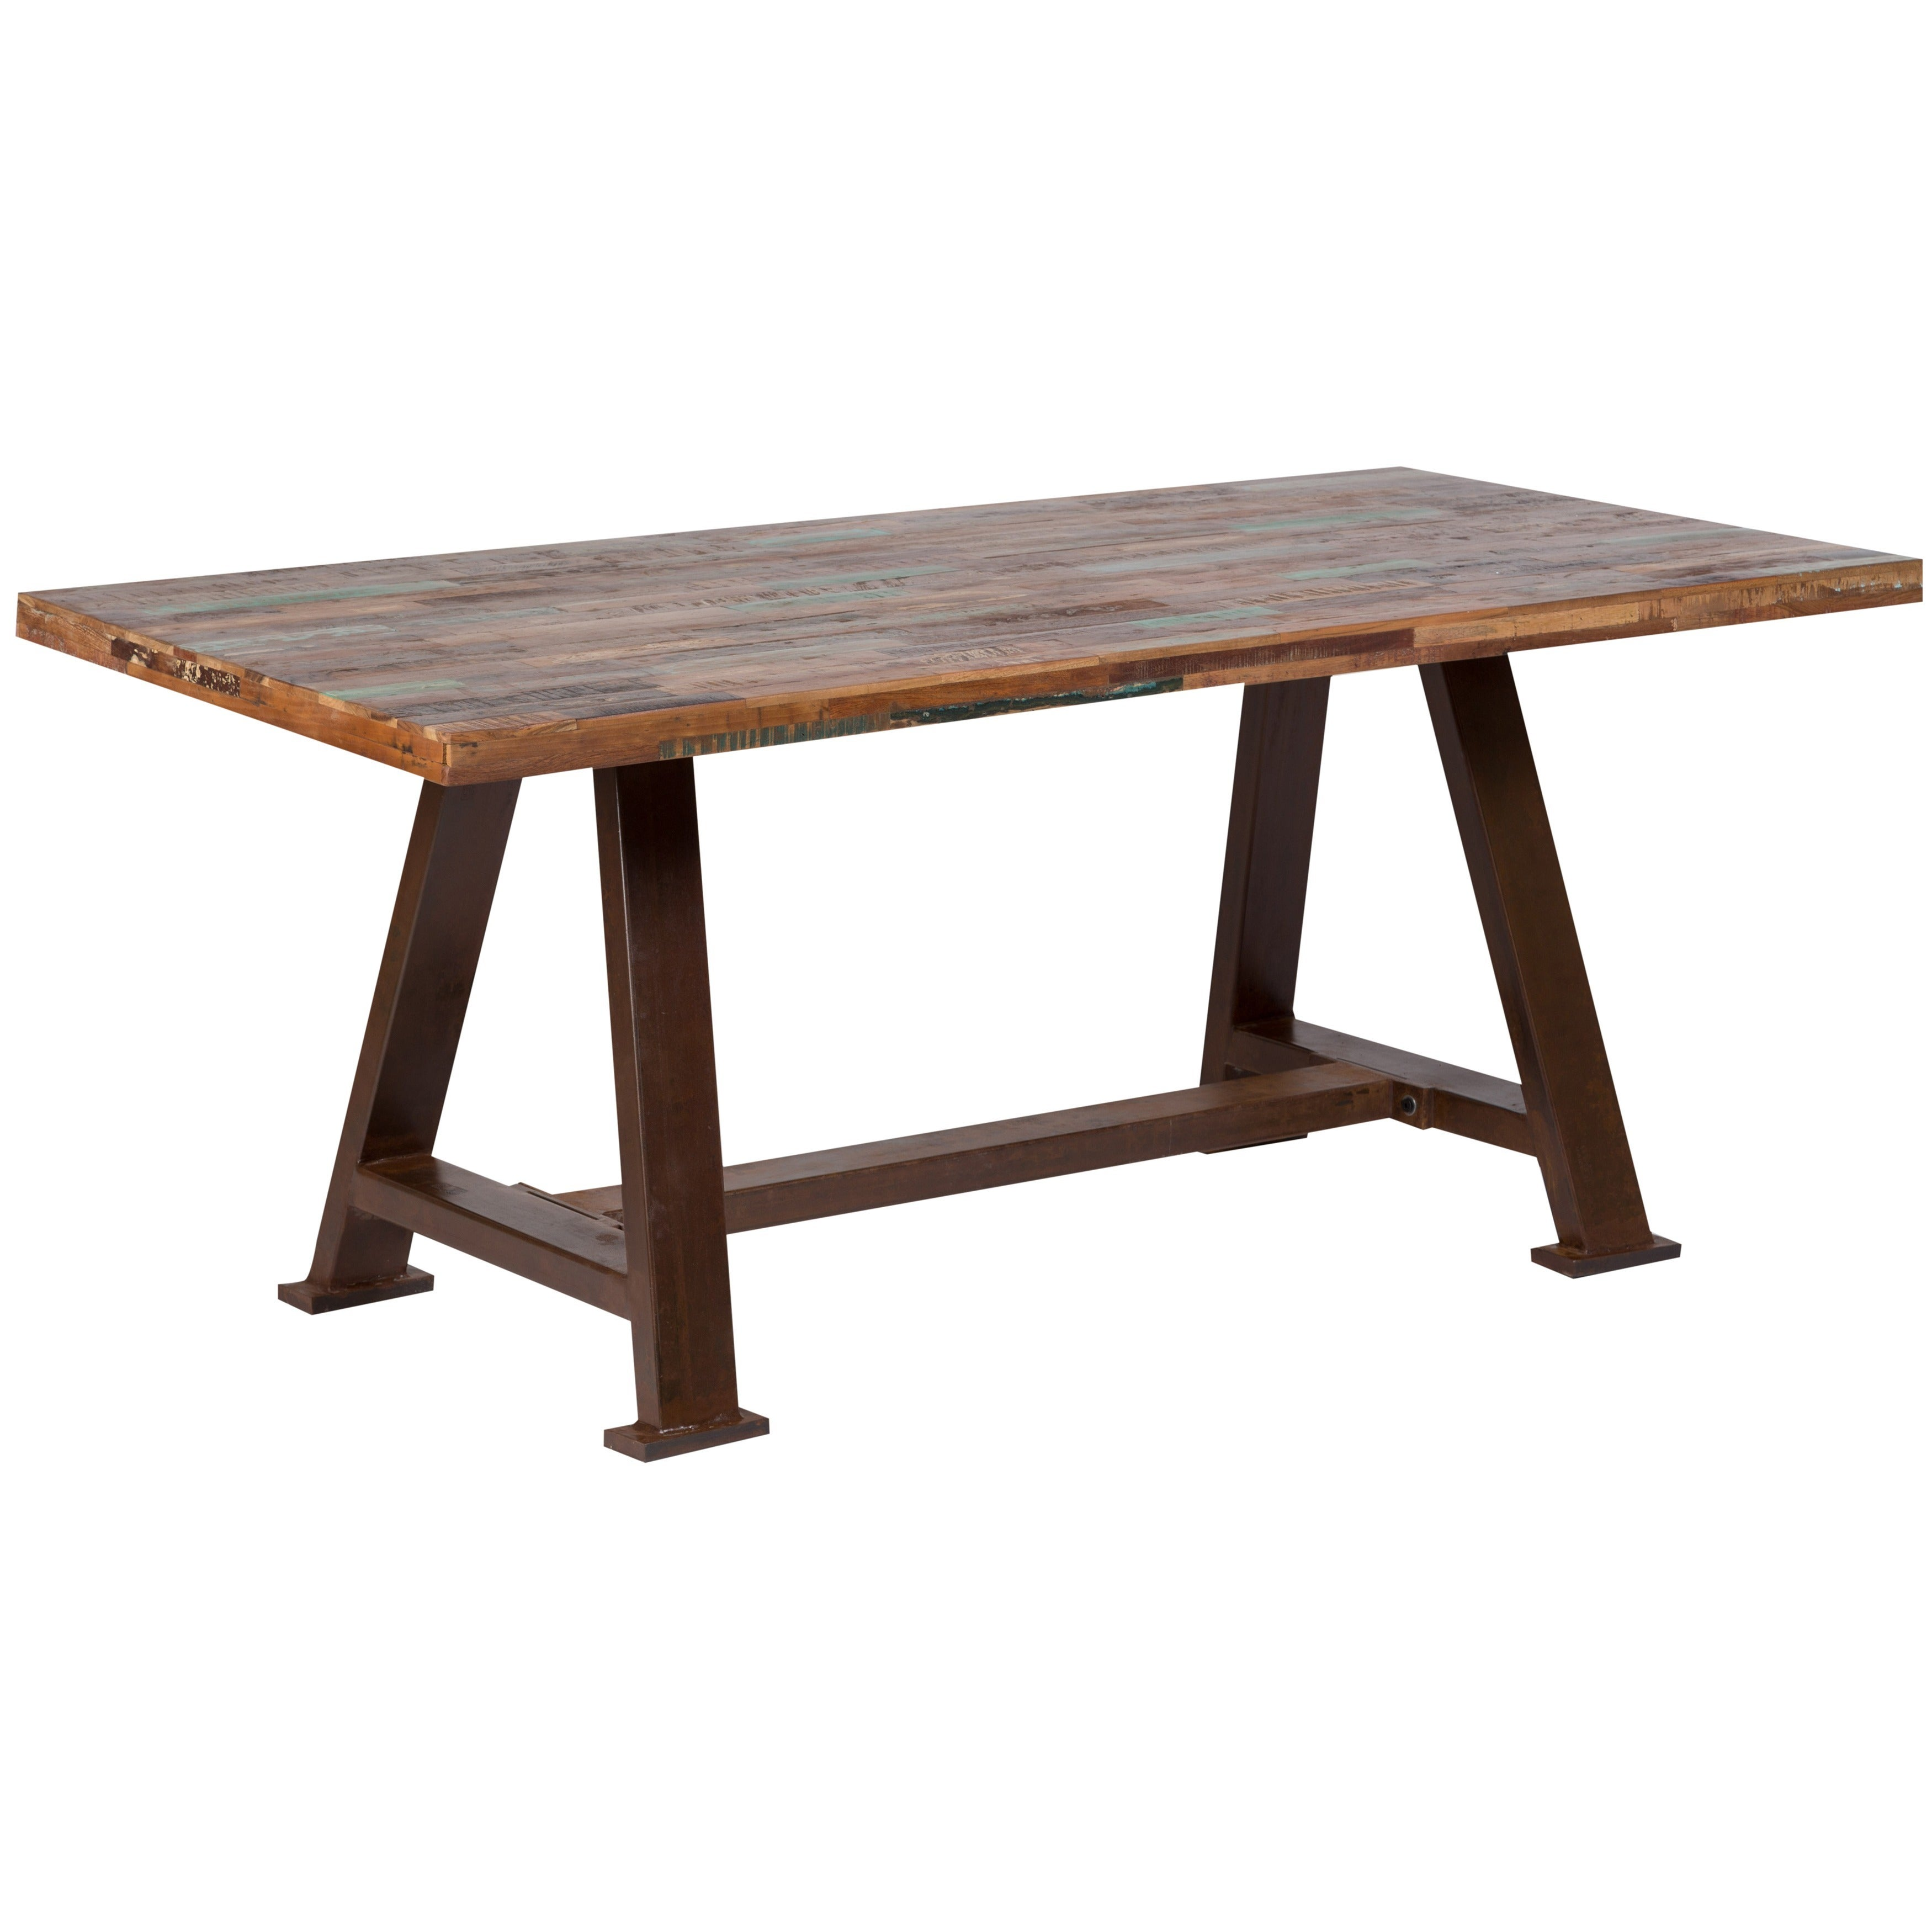 Handmade Wanderloot Brooklyn Reclaimed Salvage Wood Dining Table